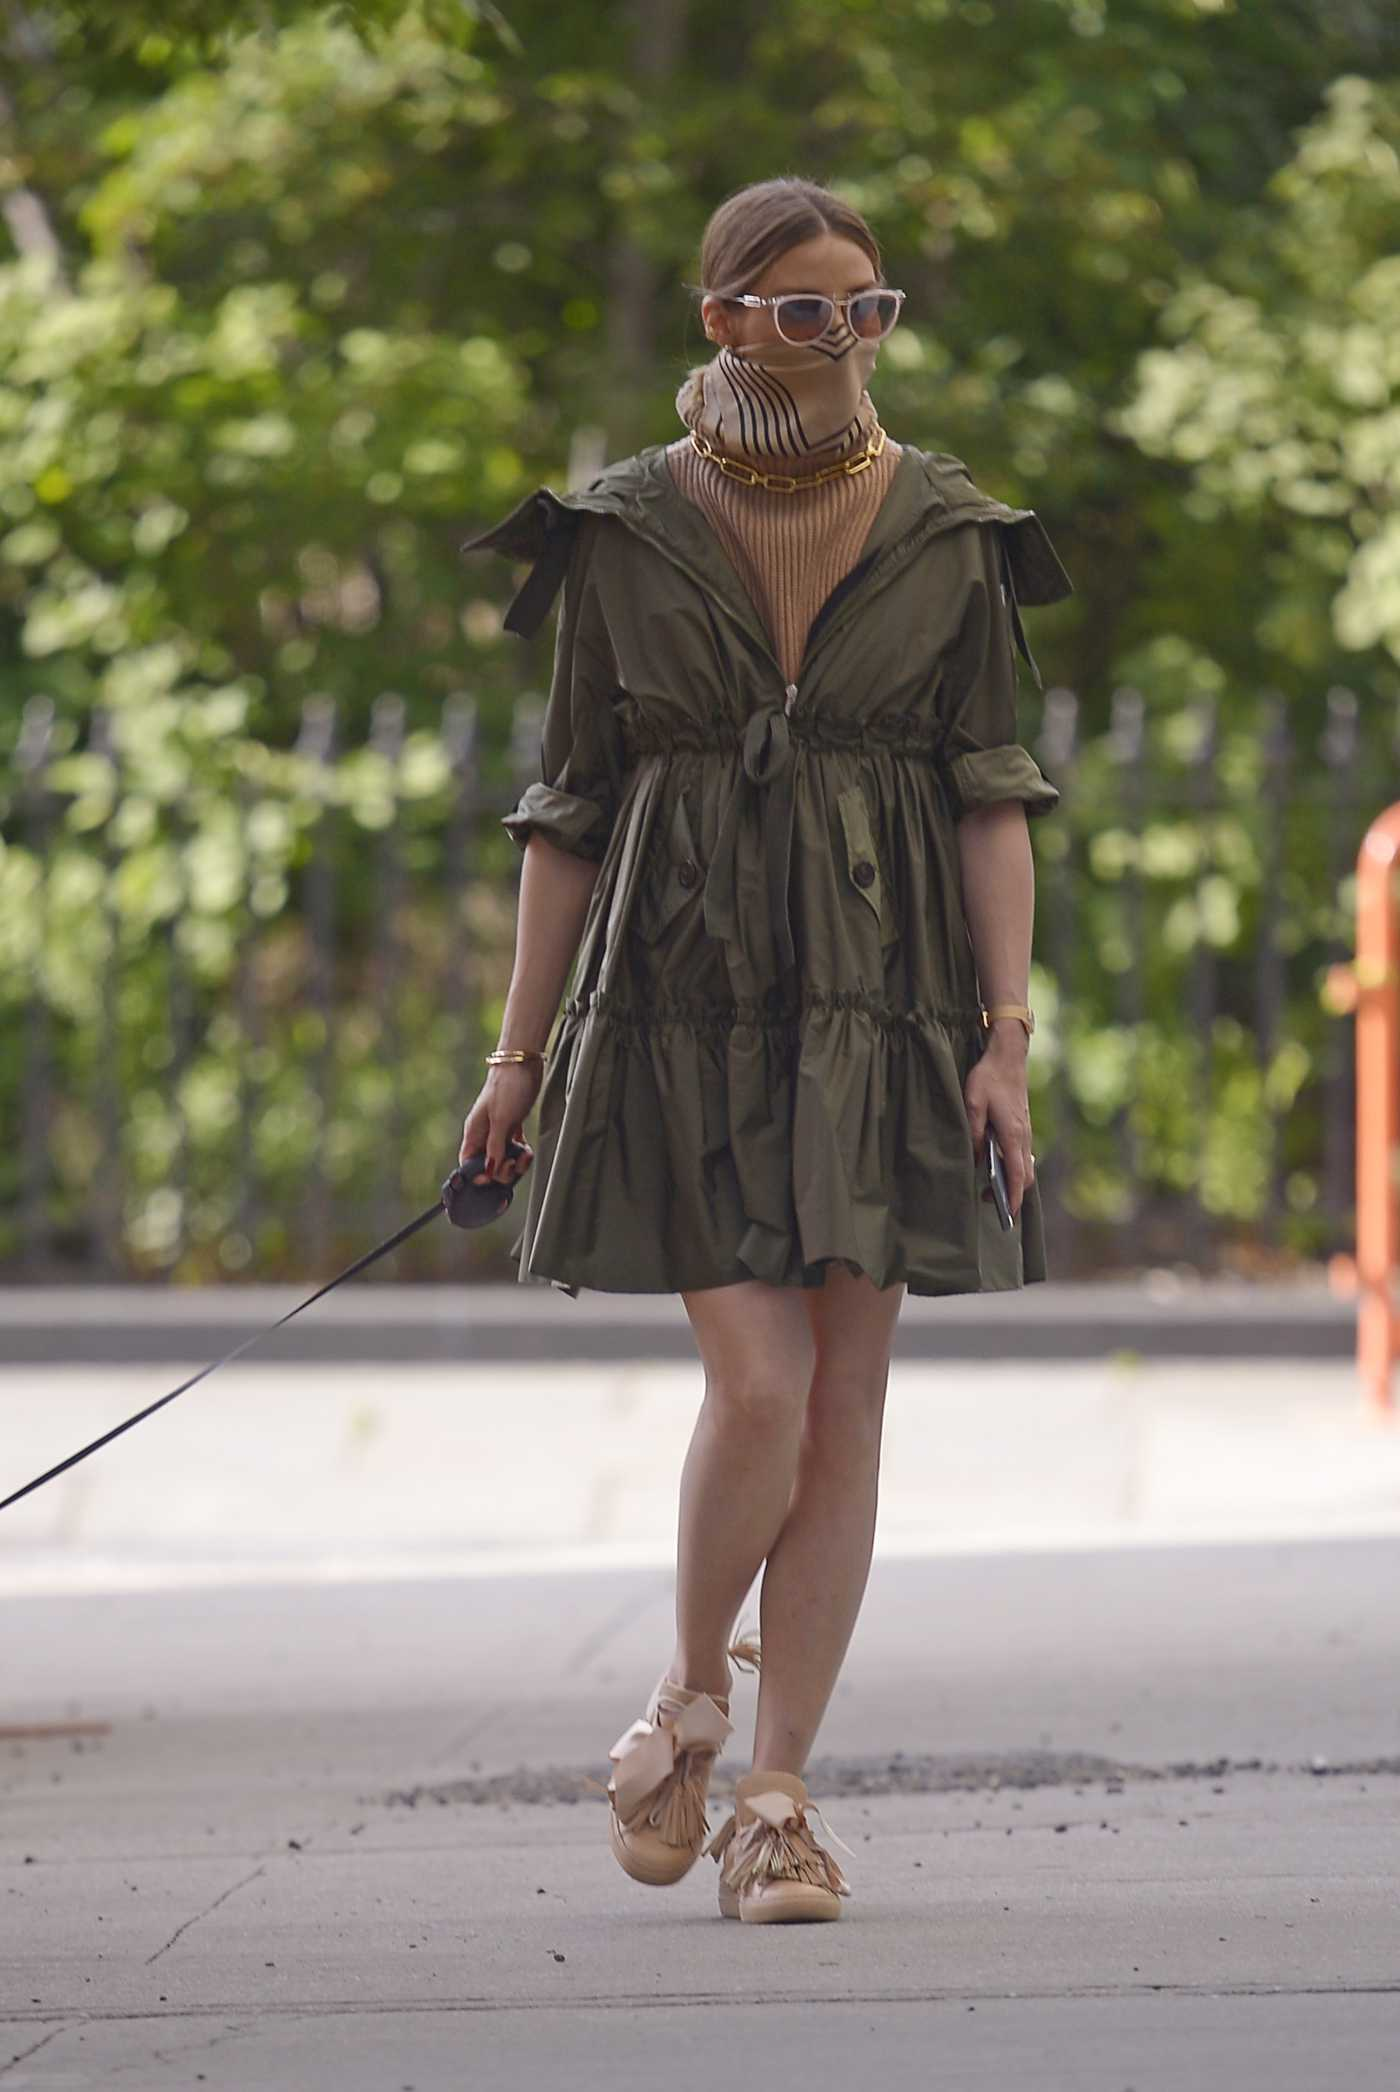 Olivia Palermo in a Beige Bandana as a Face Mask Walks Her Dog in New York 05/19/2020